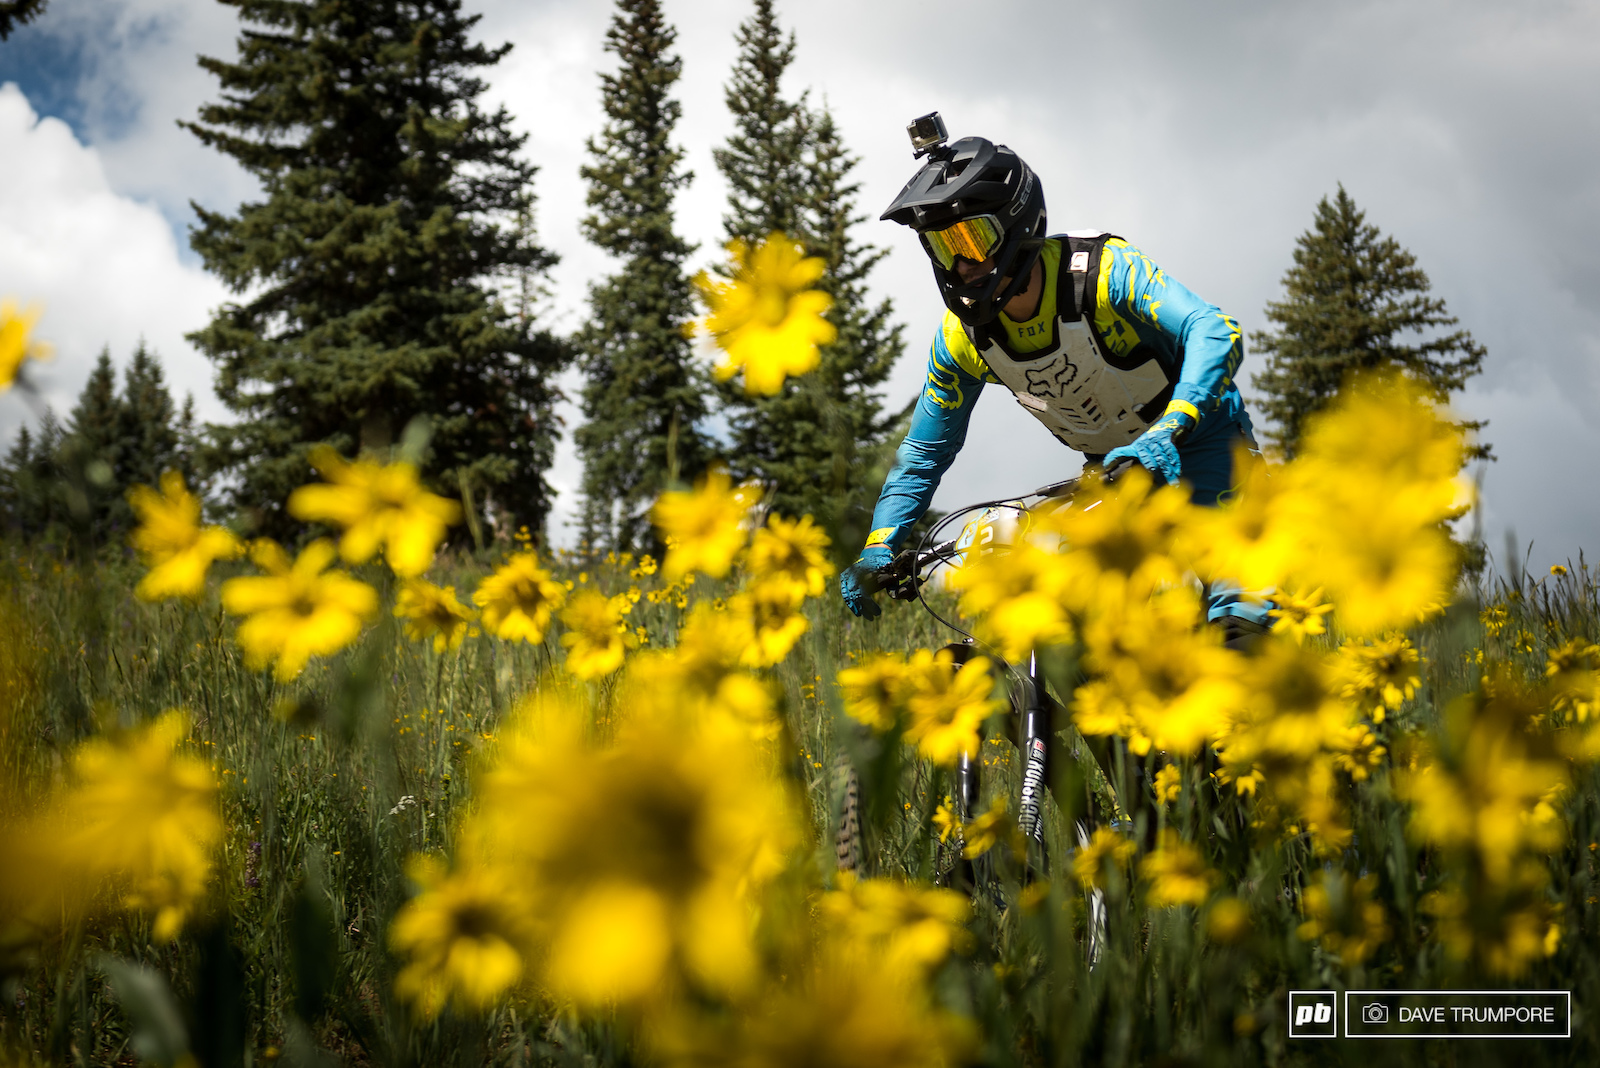 Damien Oton amongst the wild flowers and trying to find some air. With the start of stage 2 at just over 11k feet oxygen is limited.